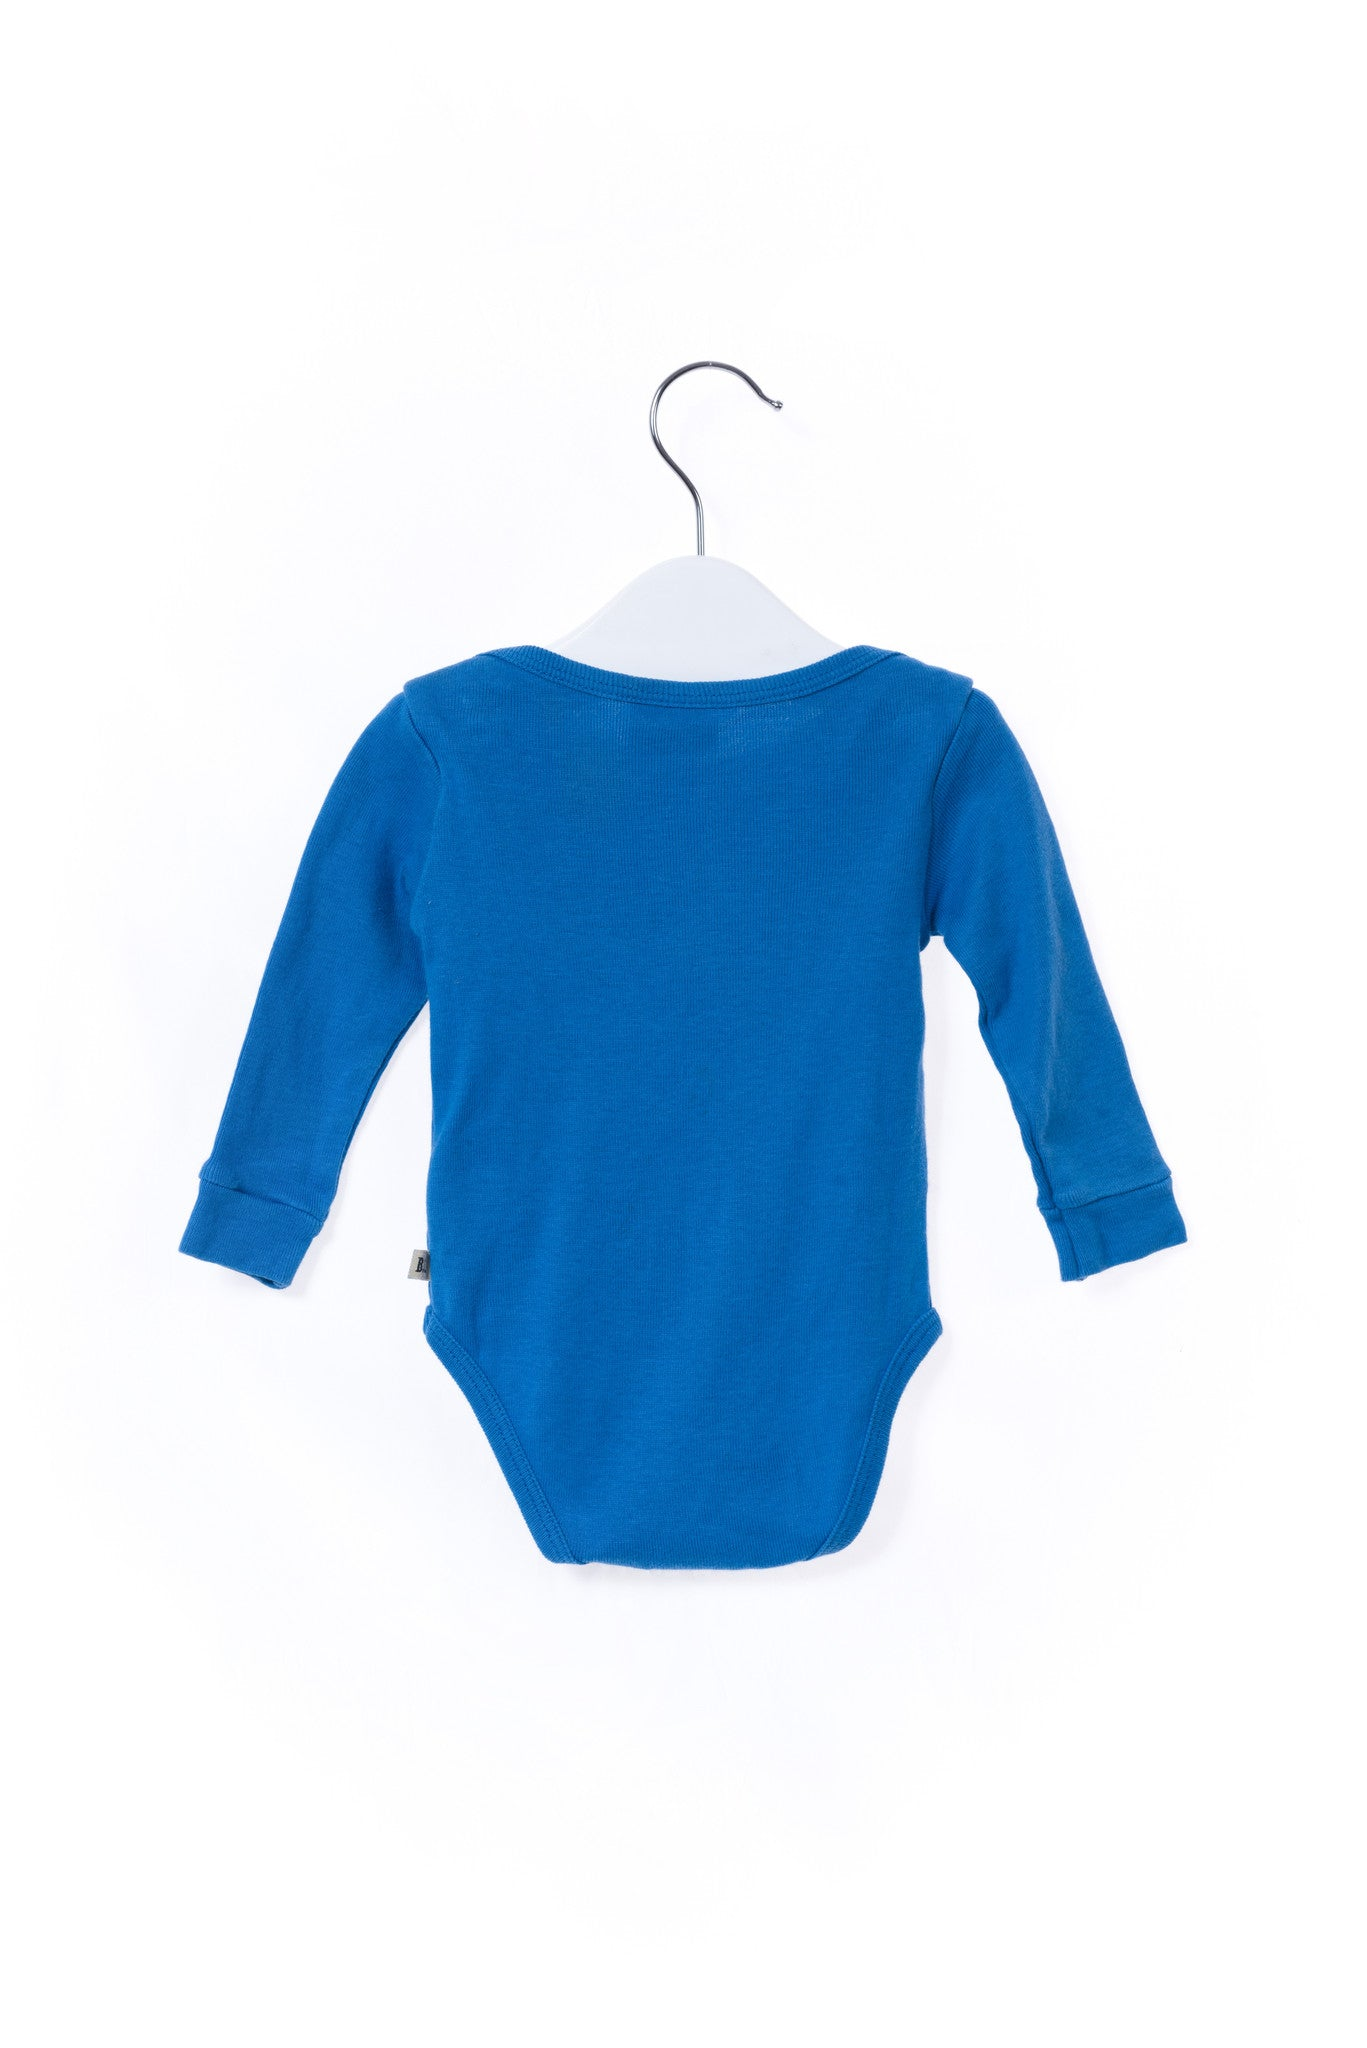 Bobo Choses at Retykle | Online Shopping Discount Baby & Kids Clothes Hong Kong